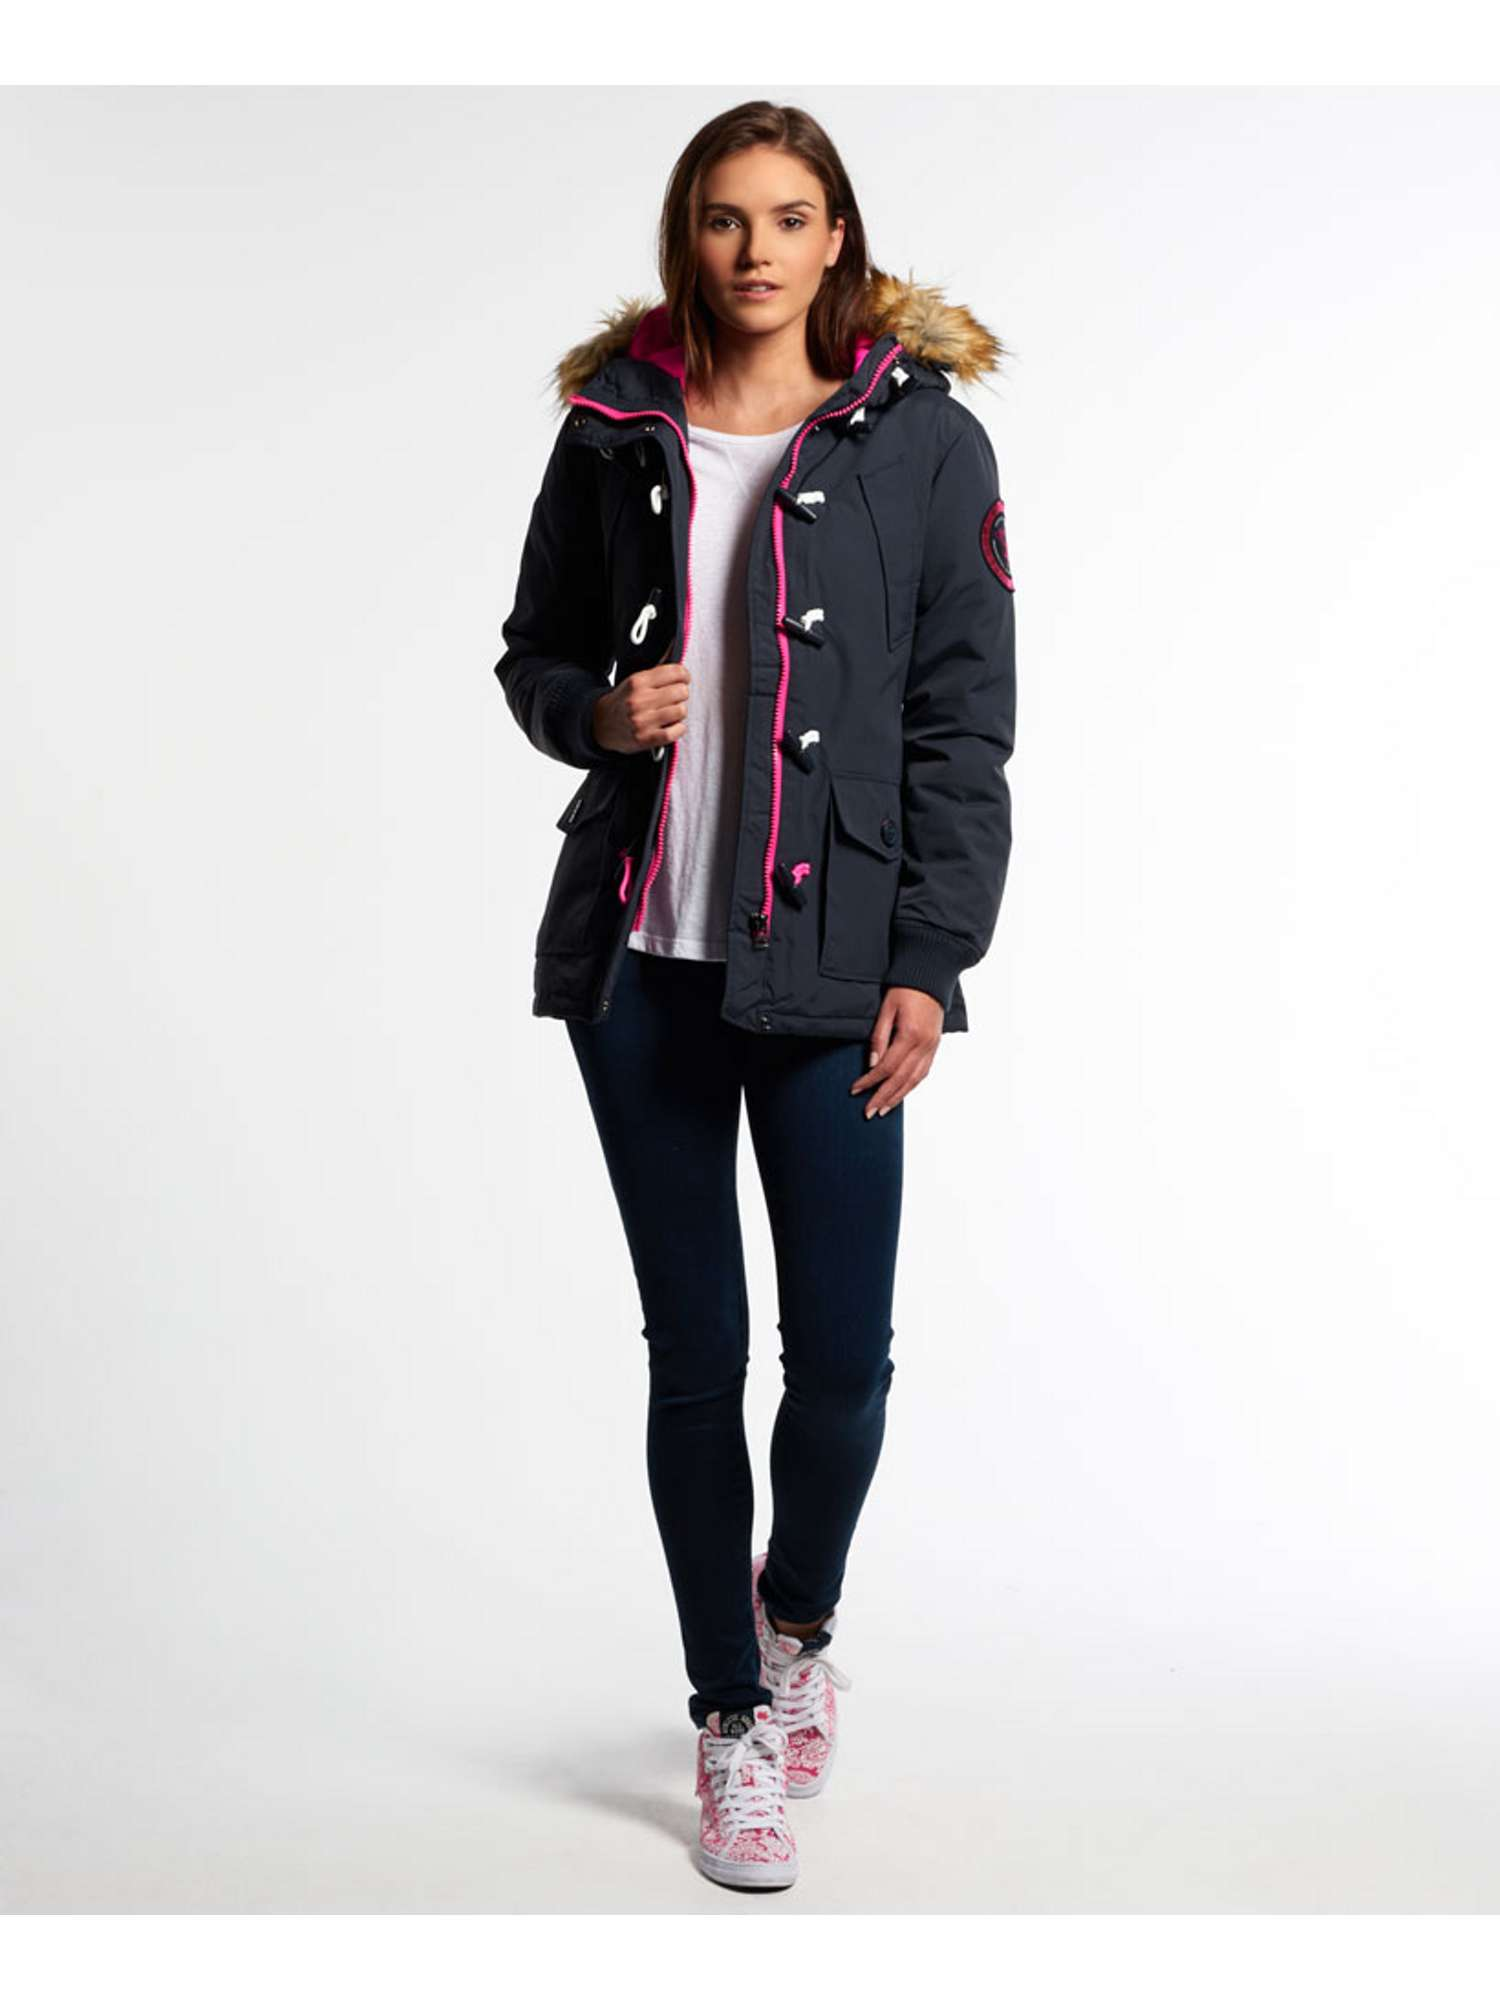 Superdry Everest Everest Duffle Superdry Superdry Coat Duffle Duffle Everest Coat Superdry Everest Coat Sw4wtqA